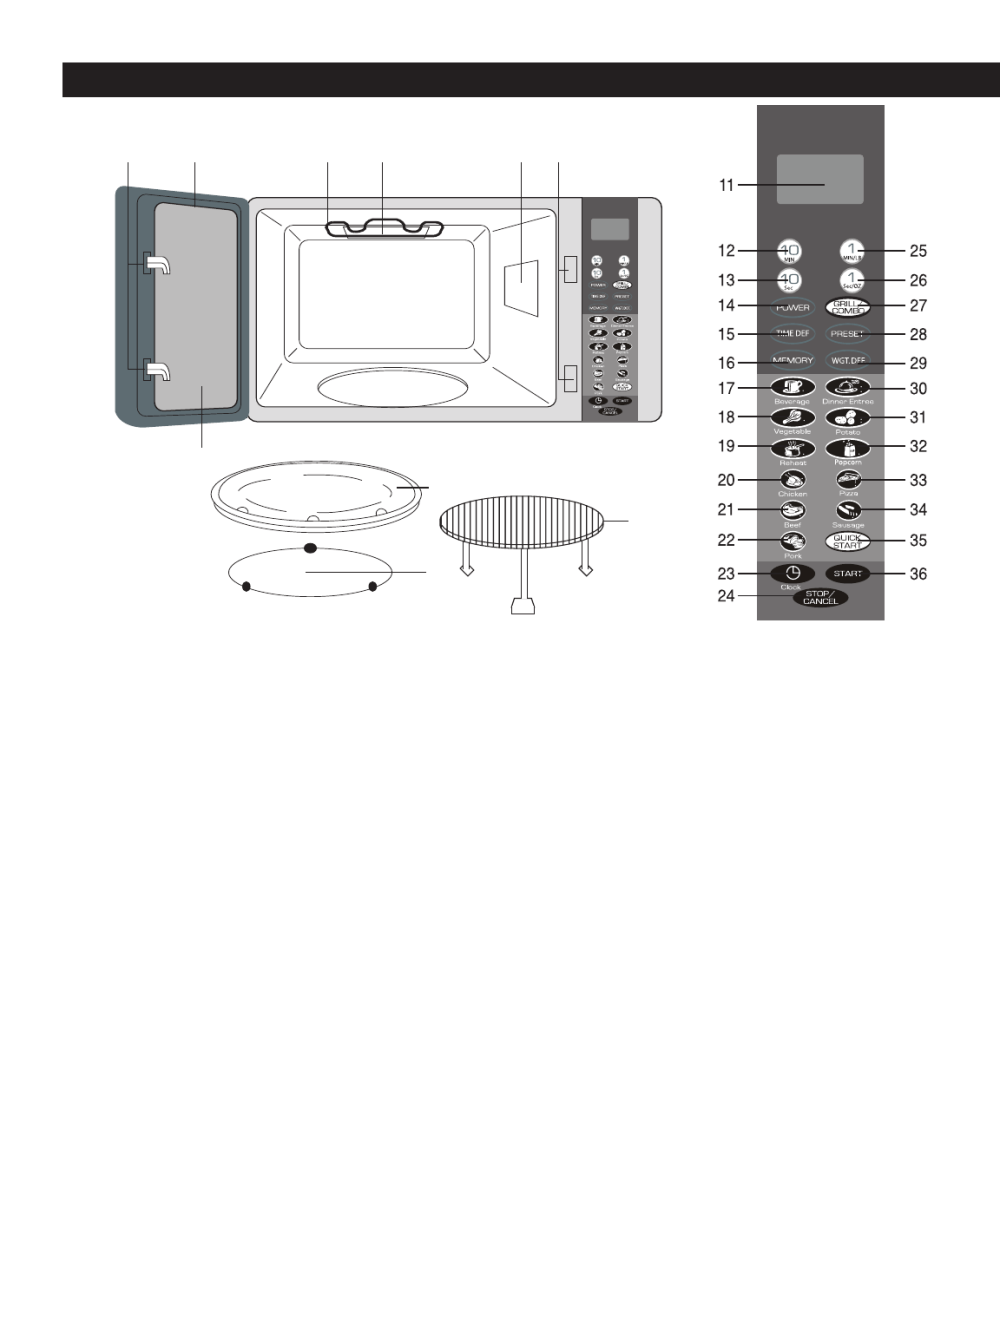 medium resolution of page 7 of emerson microwave oven mwg9111sl user guide